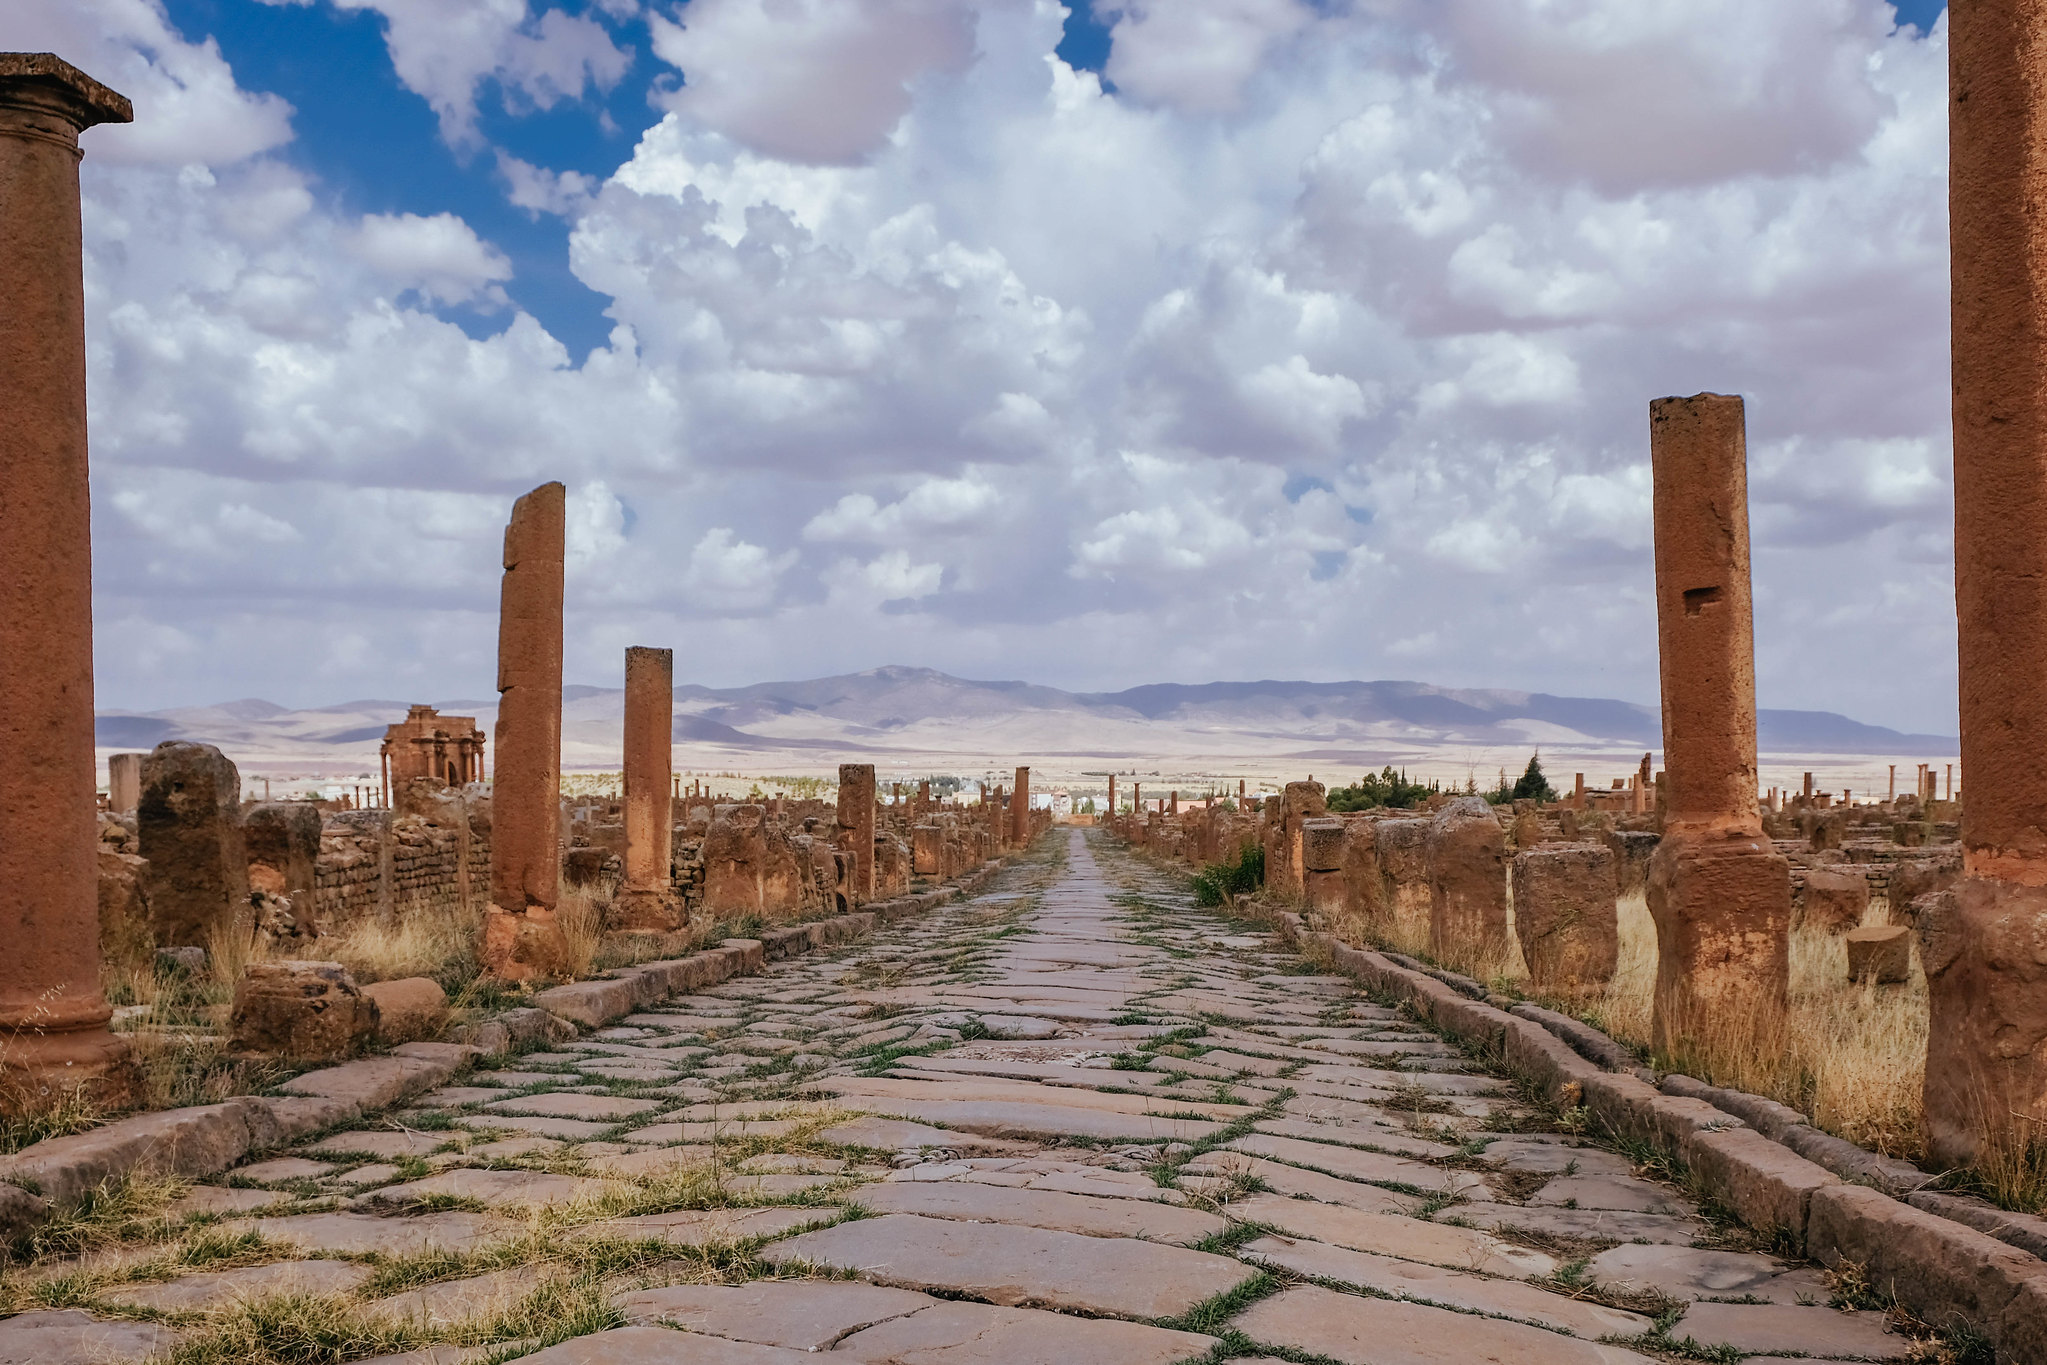 Collonade of Timgad